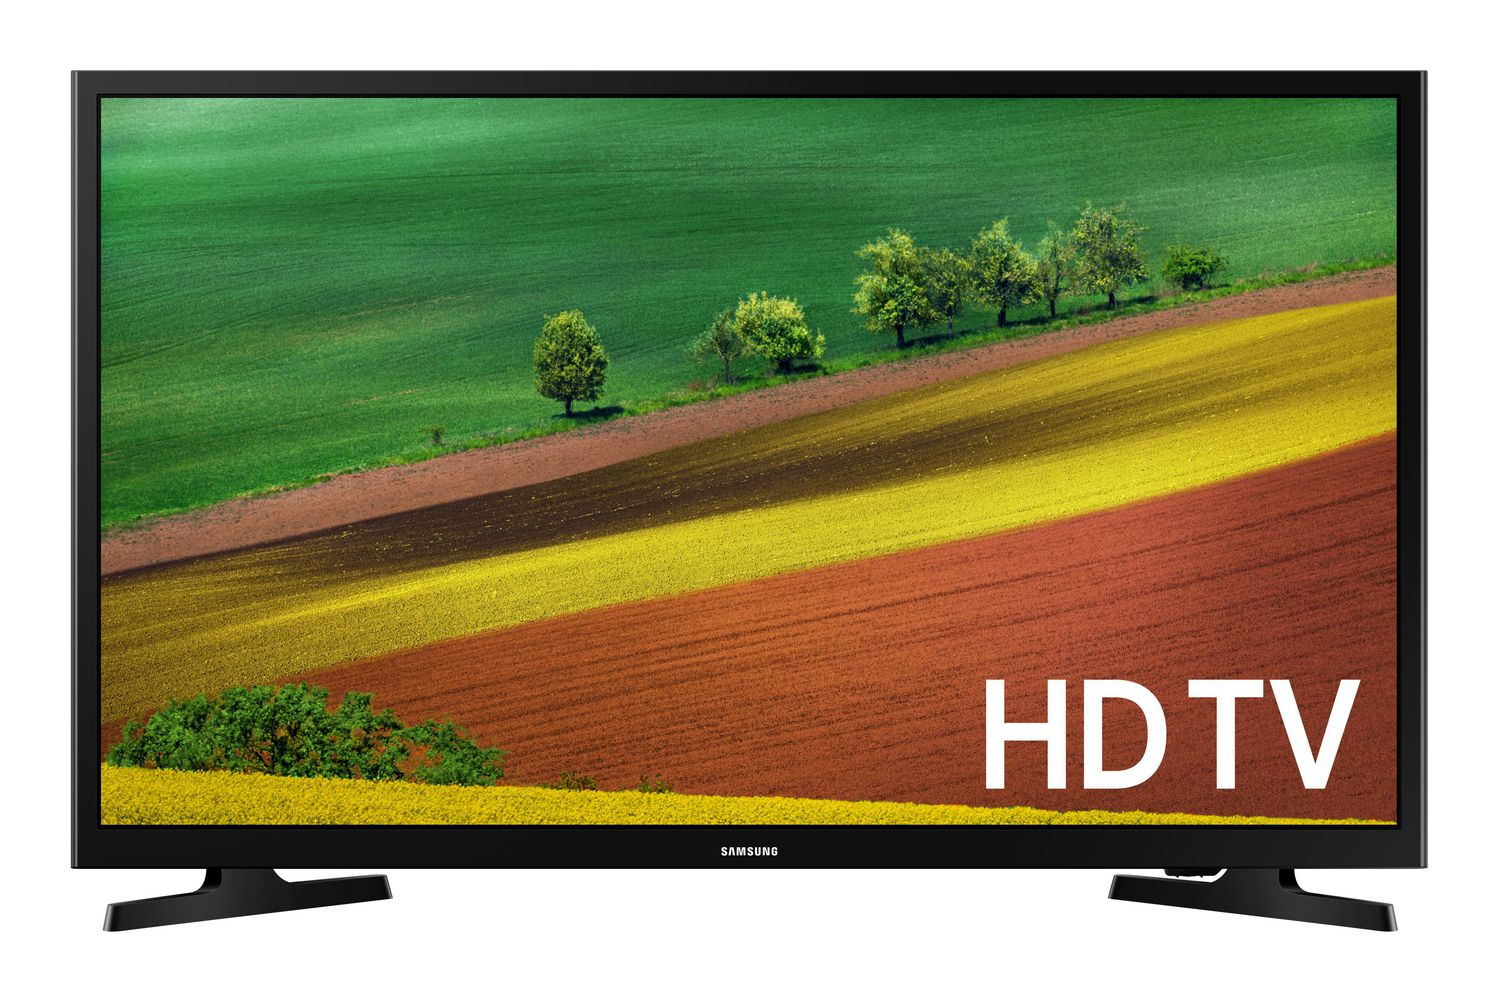 Best TVs - 30 to 39 inches - Samsung 32 inch smart TV with farm field on display screen